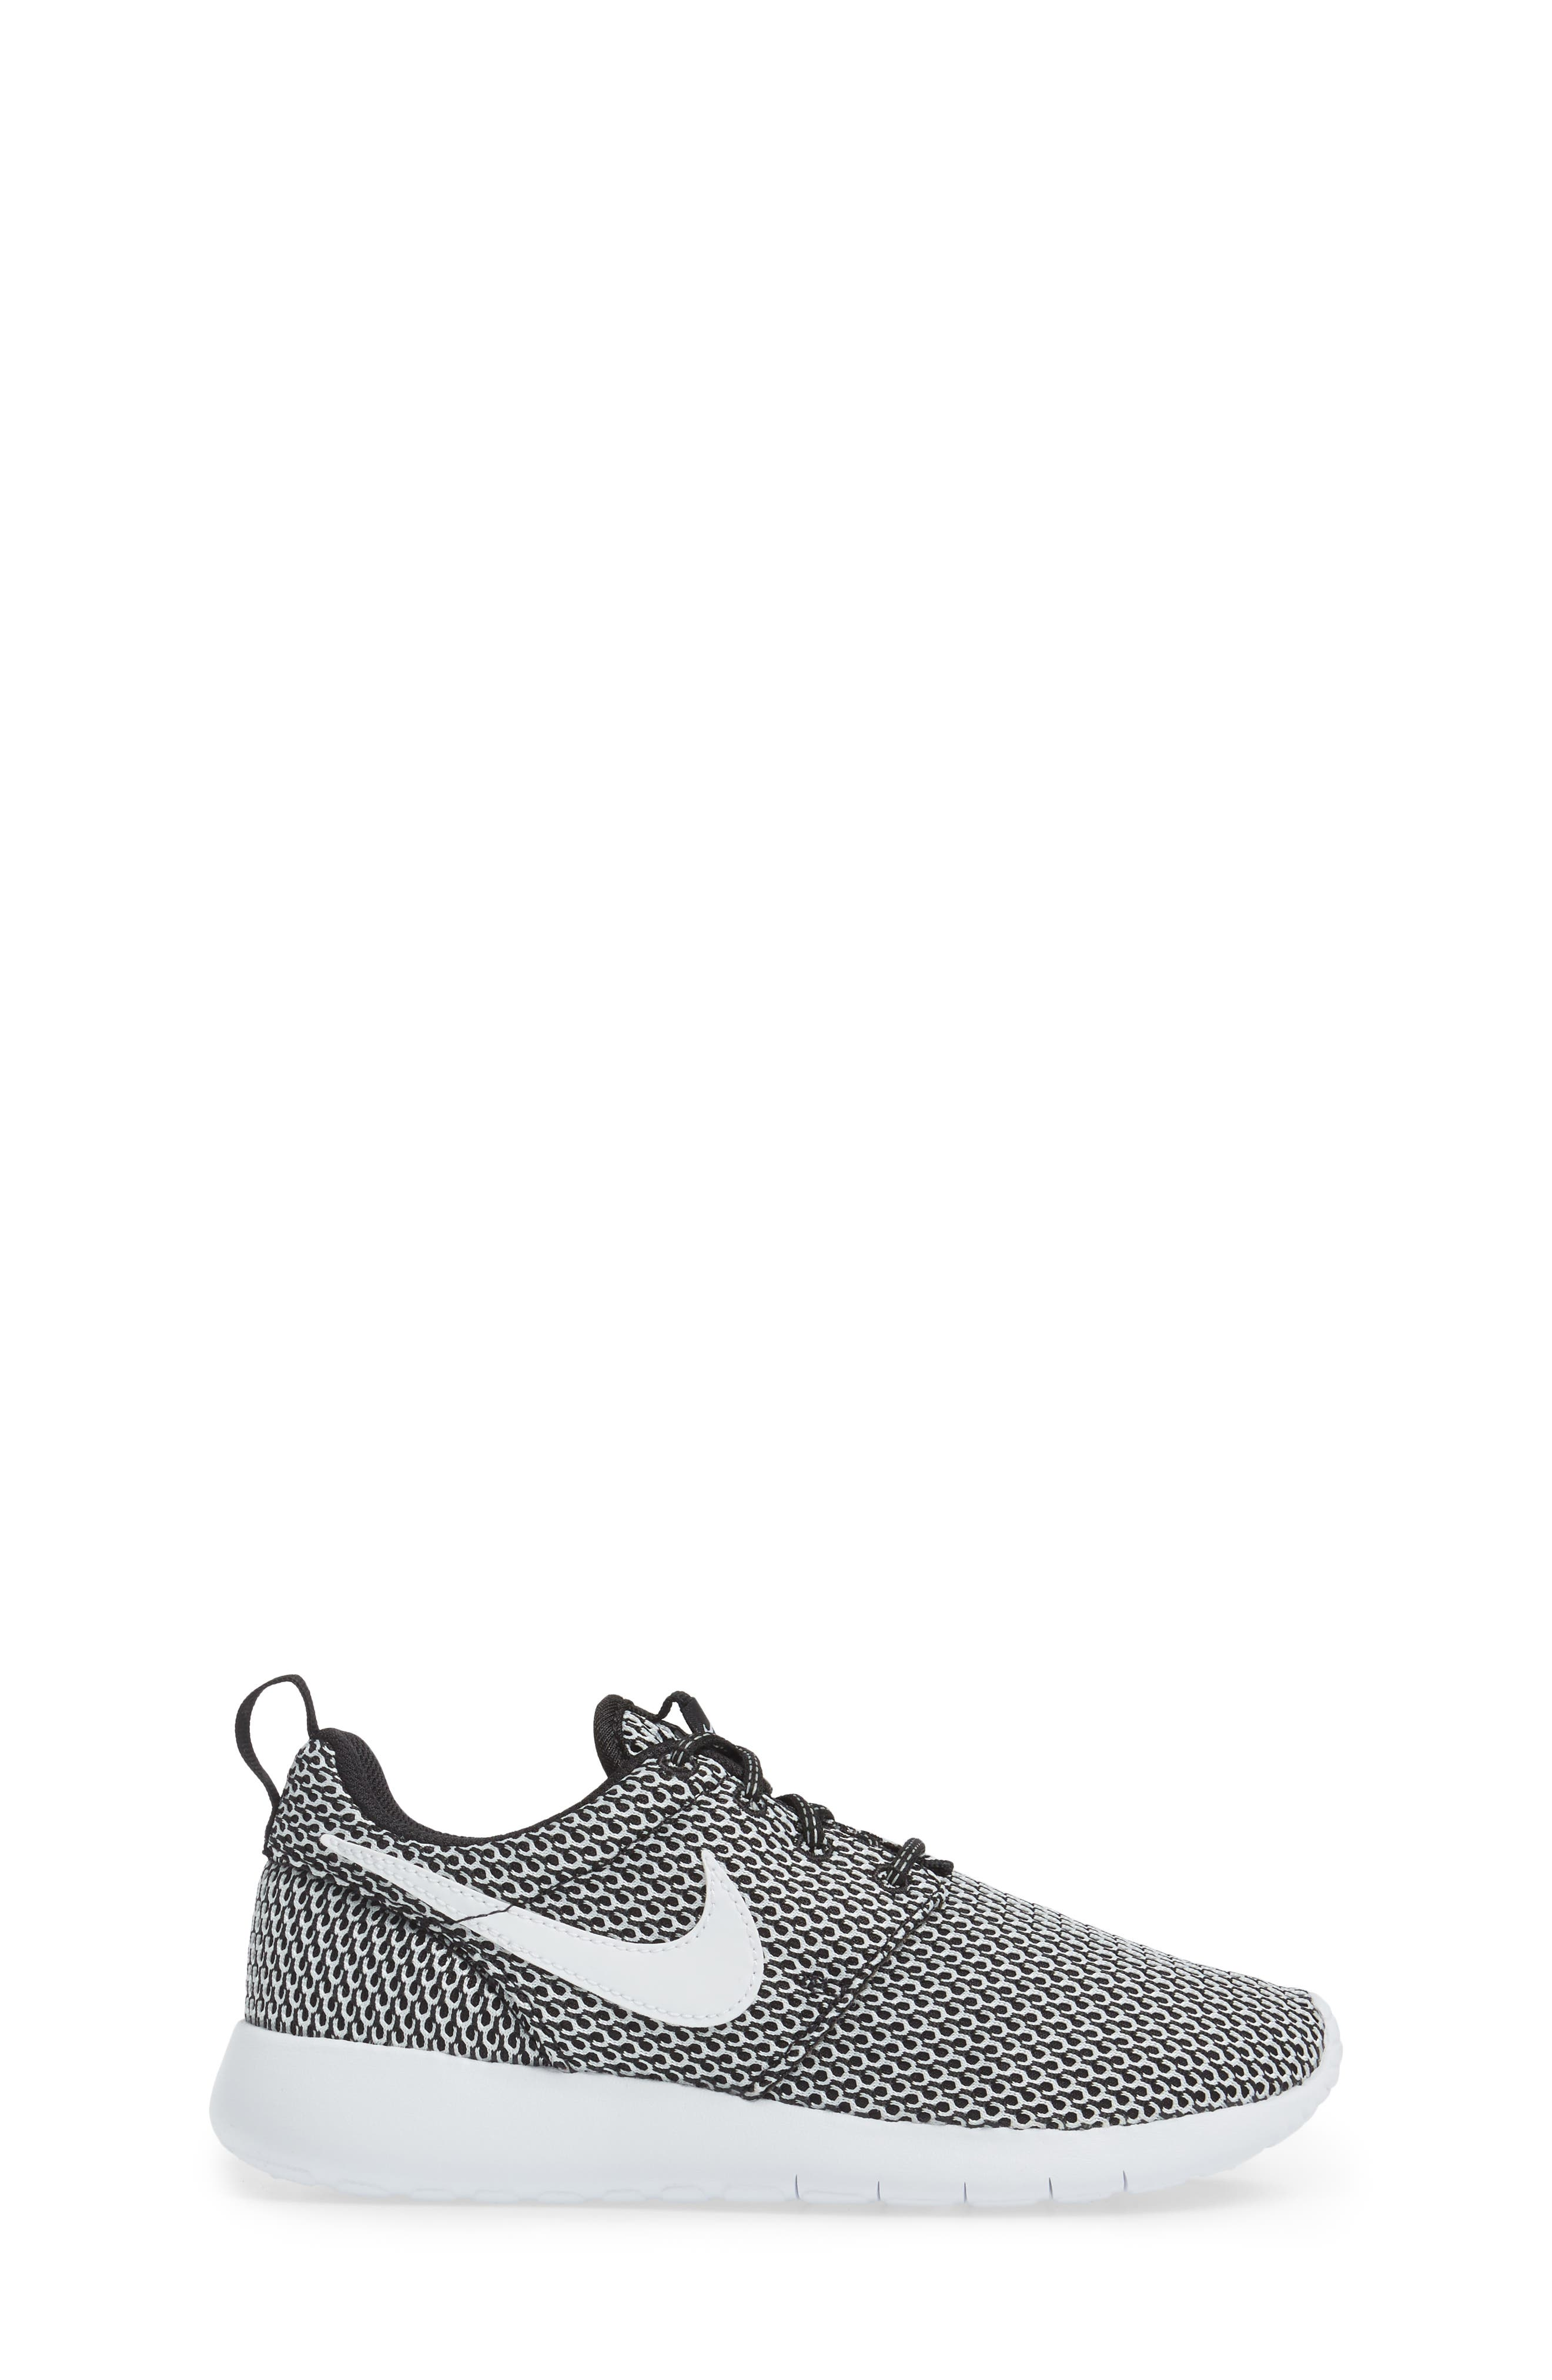 'Roshe Run' Sneaker,                             Alternate thumbnail 115, color,